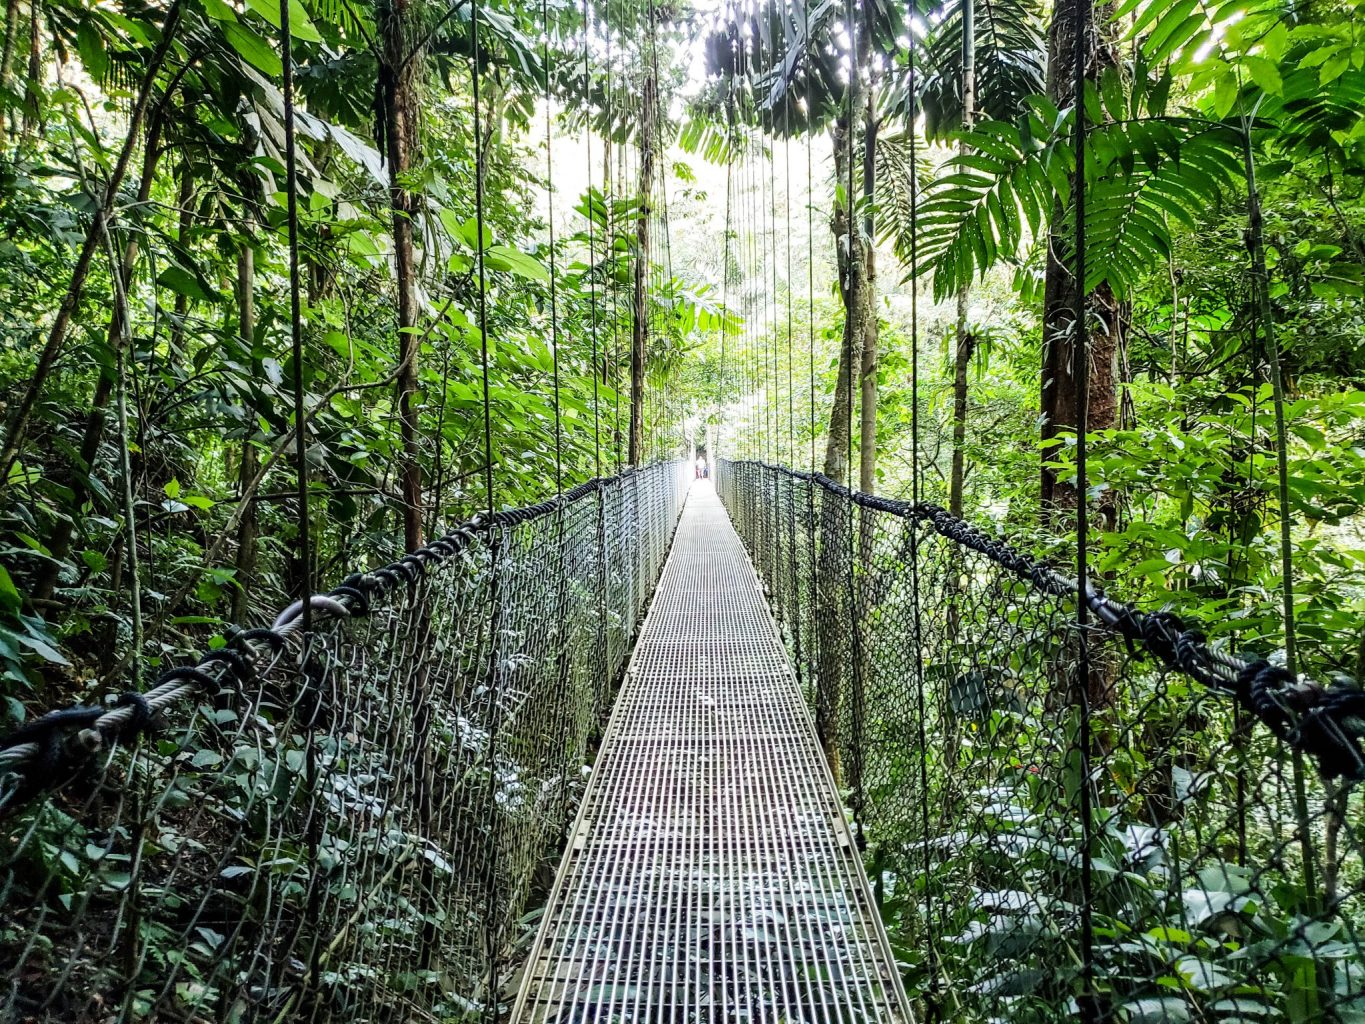 Things to do in Costa Rica with kids include the Mistico Hanging Bridges in Arenal